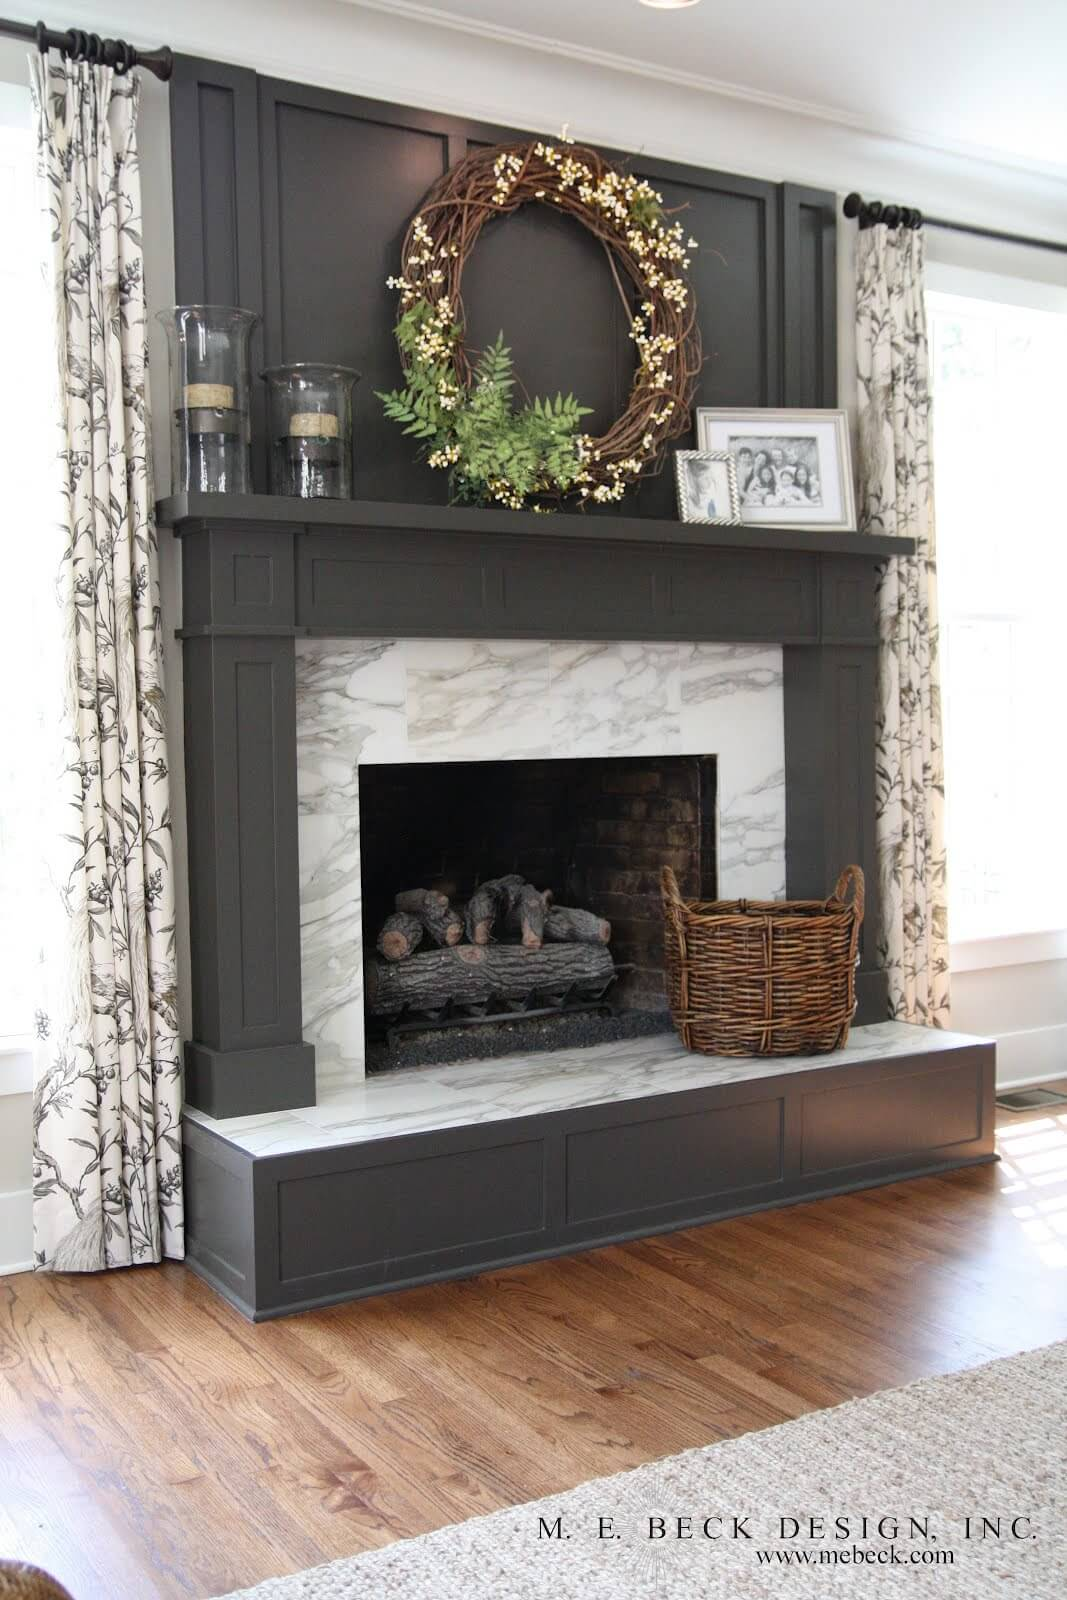 Tv Above Fireplace Ideas Cable Box Photos Fireplace Ideas